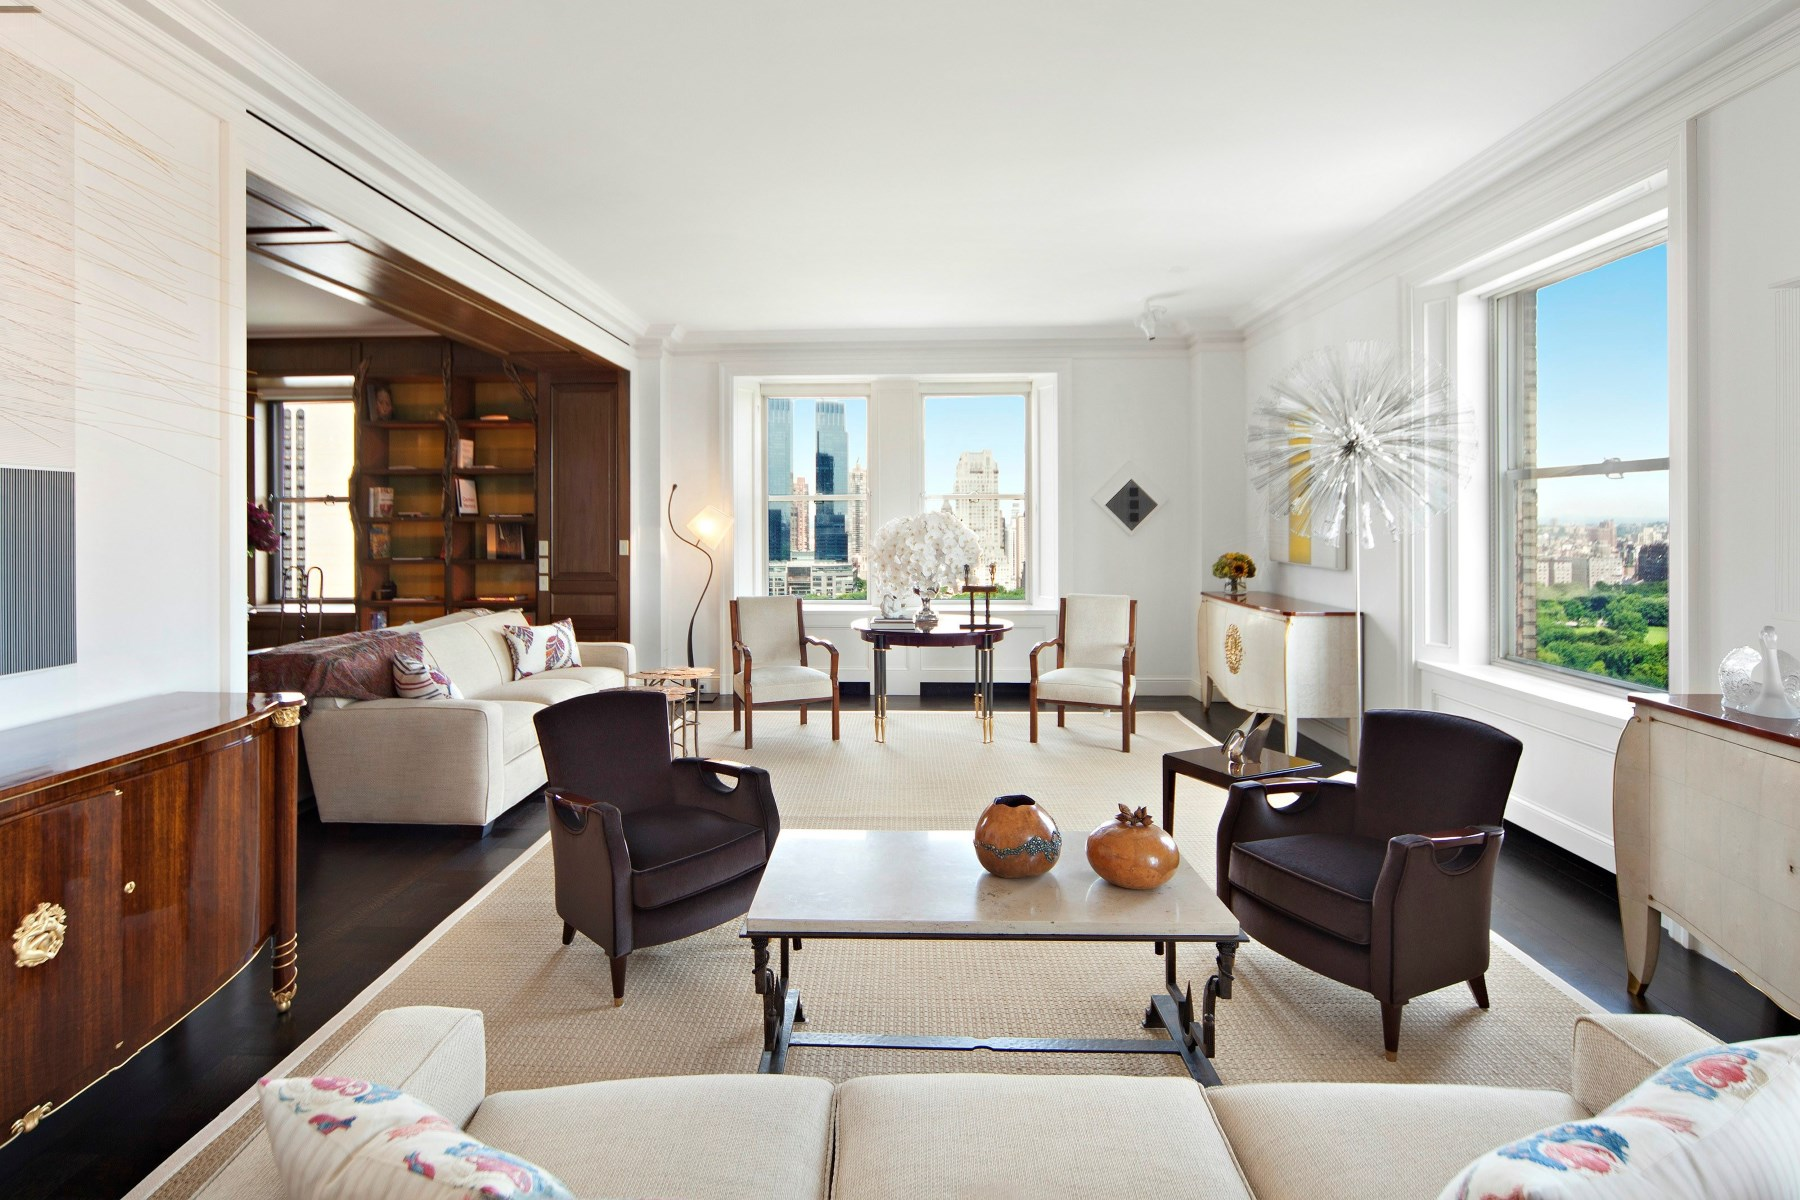 Co-op for Sale at Pierre Hotel Perfection 795 Fifth Avenue Apt 30/31, Upper East Side, New York, New York, 10065 United States